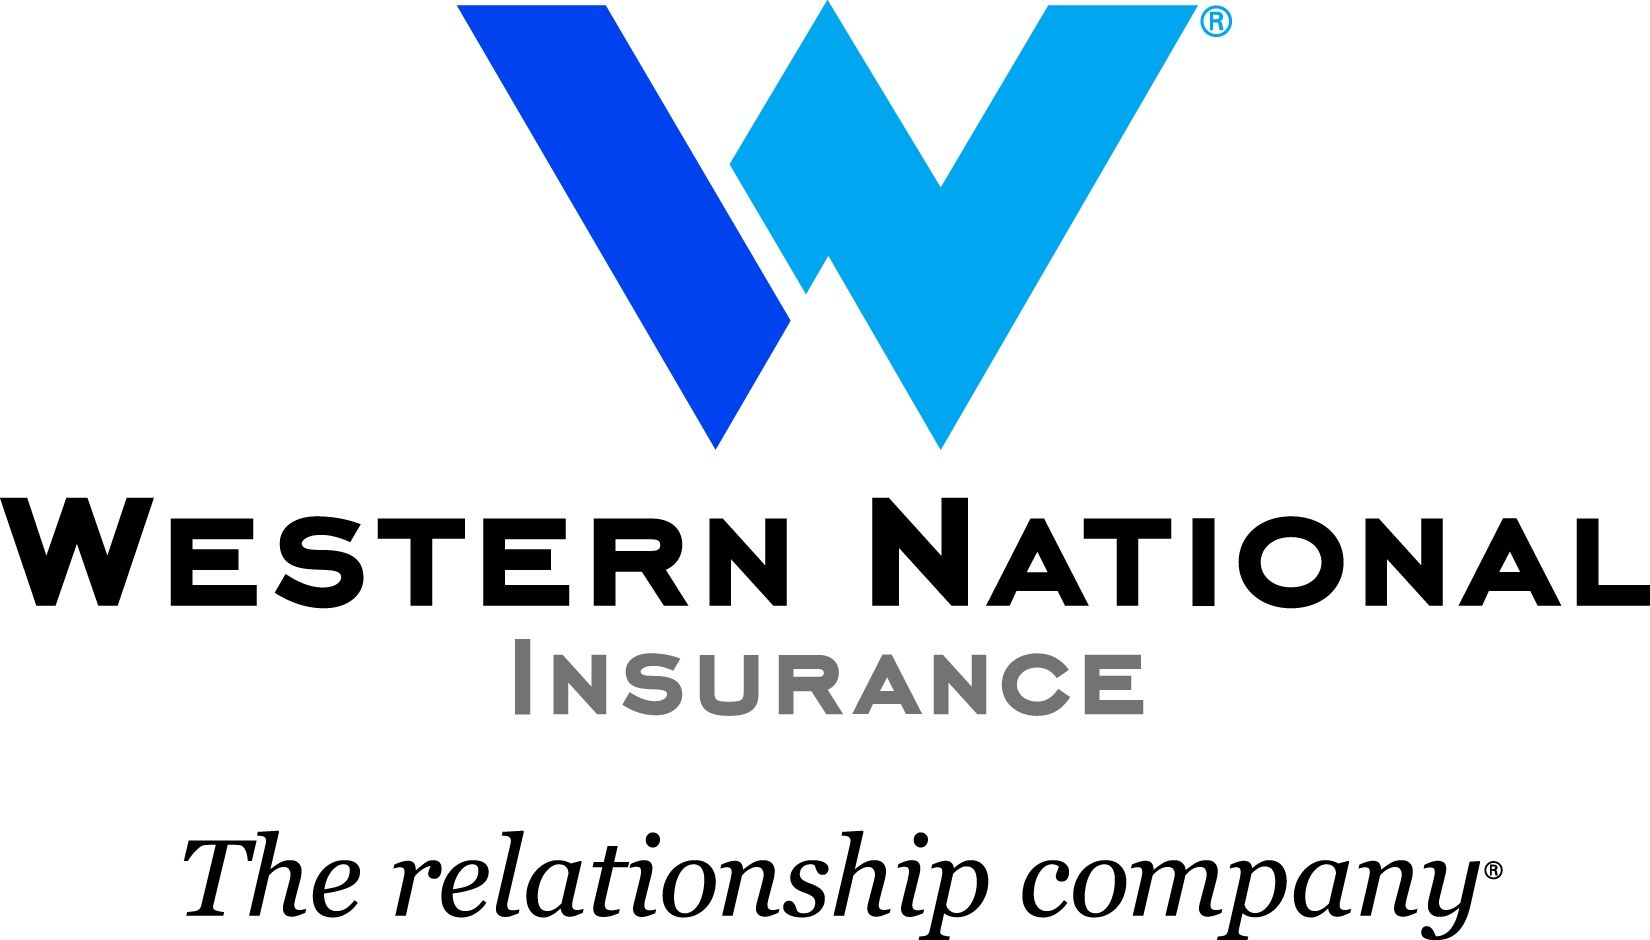 Western National Insurance Property/Casualty & Bonding